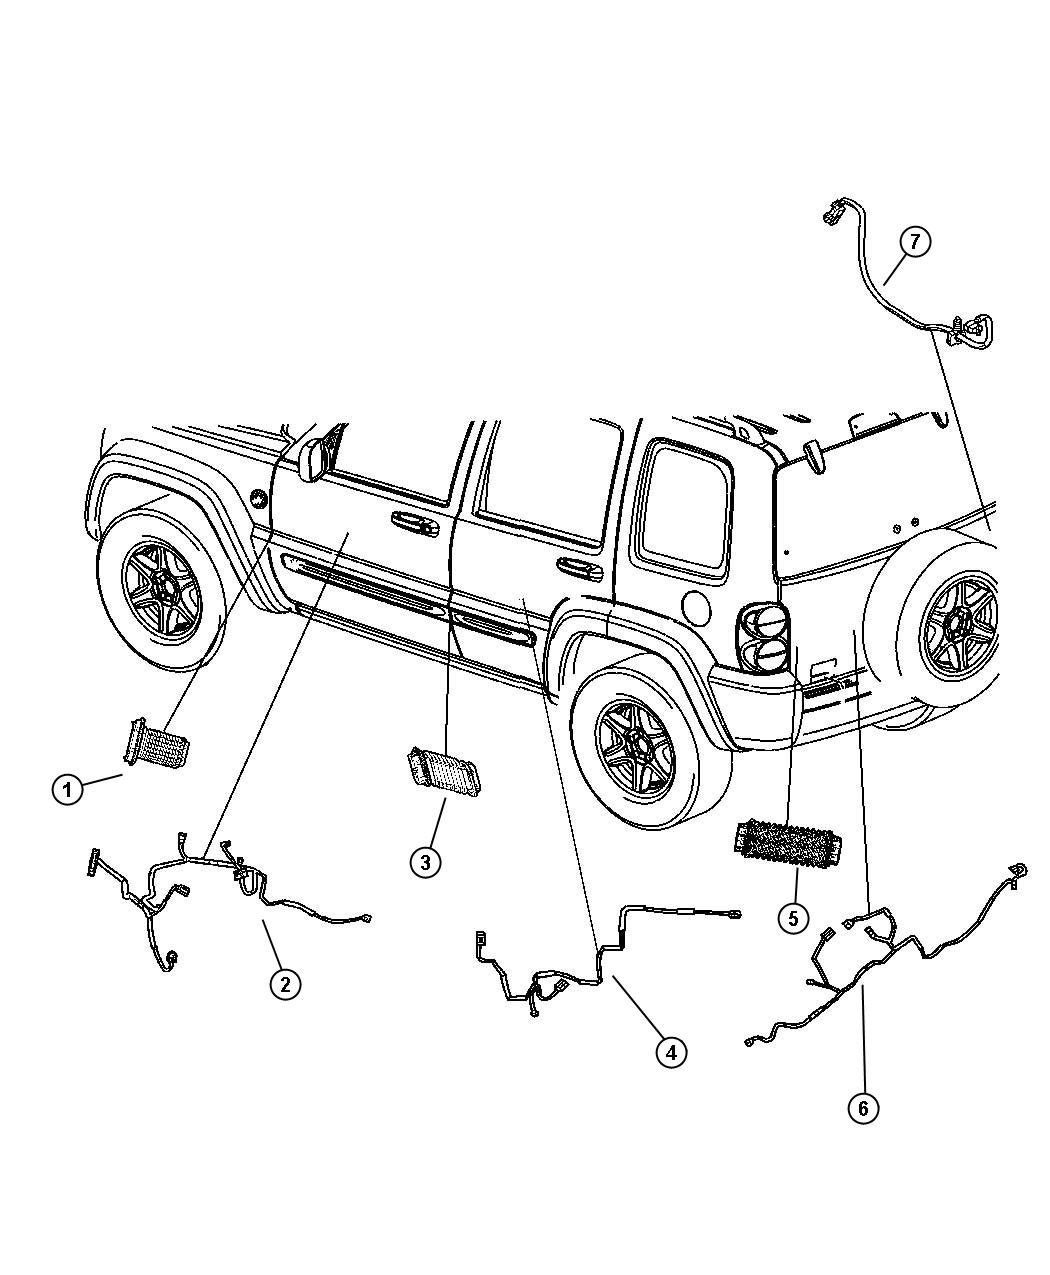 2006 Jeep Grand Cherokee Lift Gate Parts Diagram Wiring Commander For Free